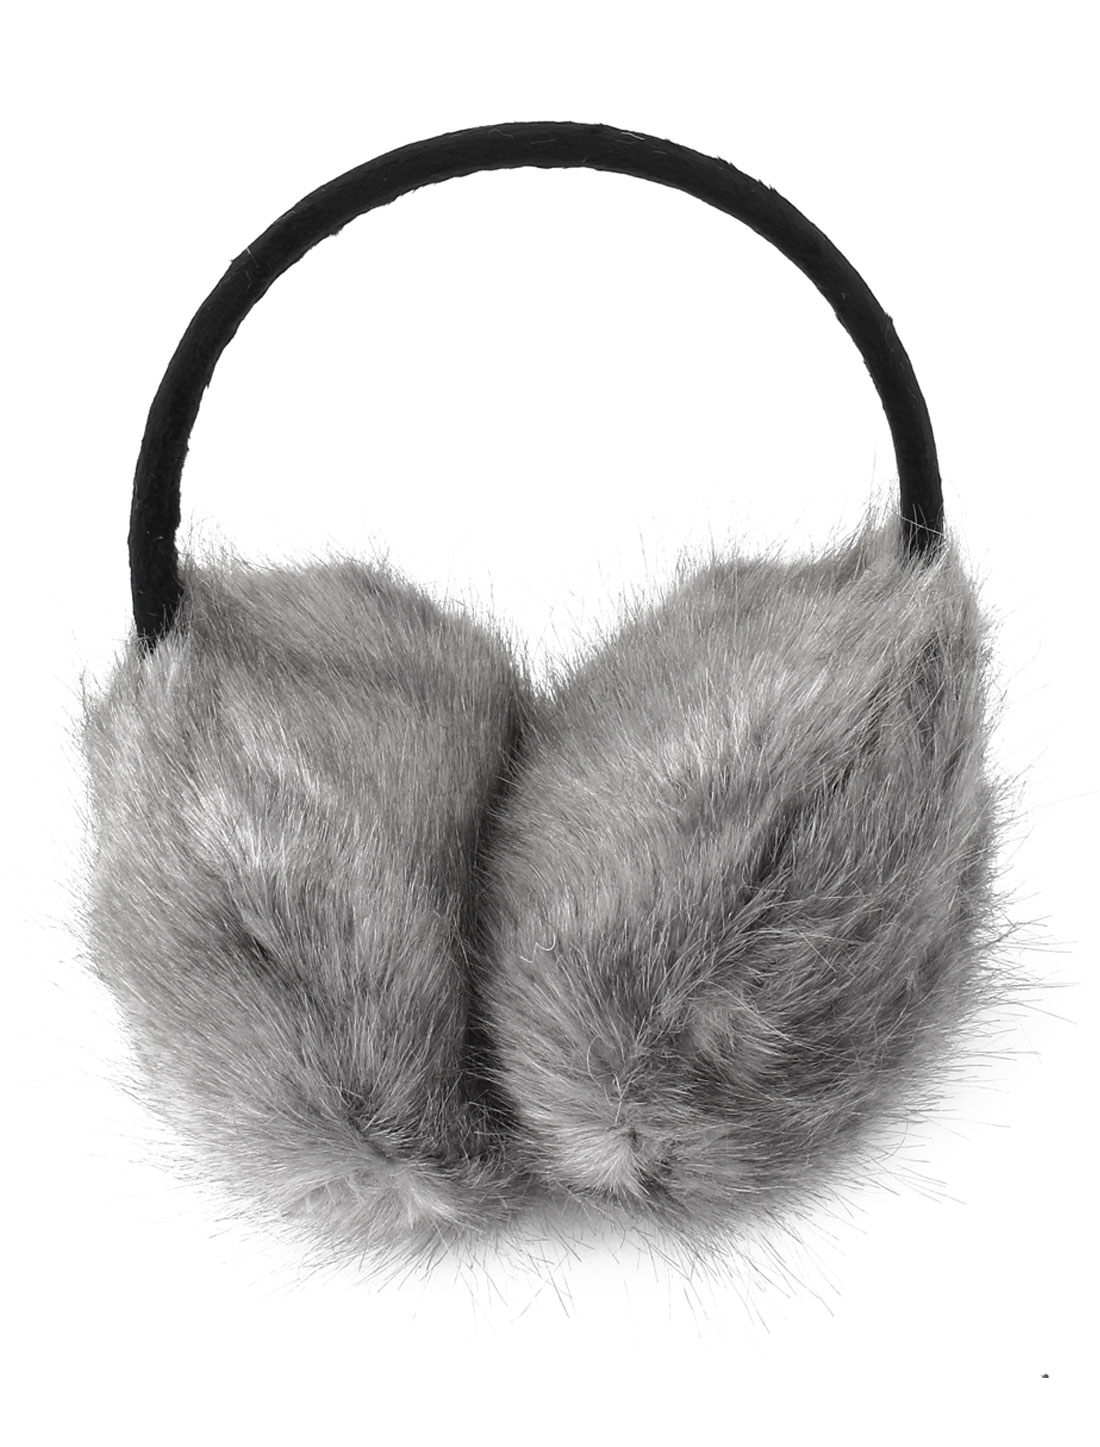 Plastic Frame Dark Gray Plush Fluffy Ear Warmers Earmuffs for Lady